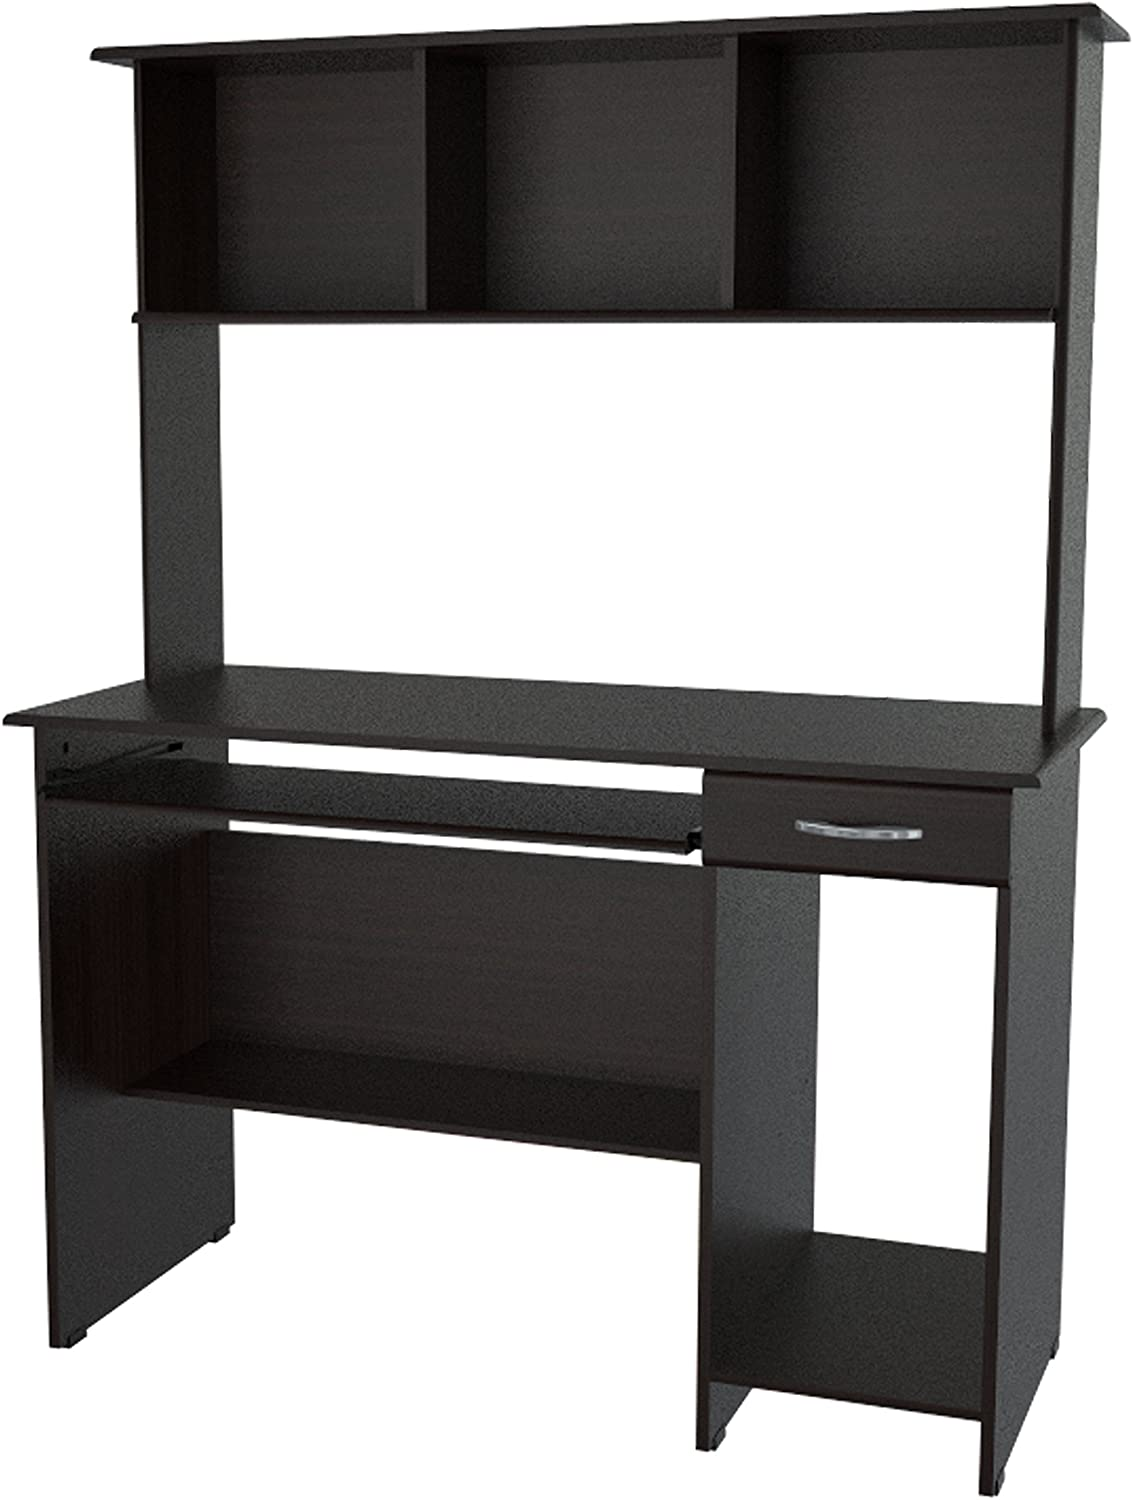 Inval Computer Max 89% OFF Workcenter Cheap SALE Start Espresso-Wengue with Hutch